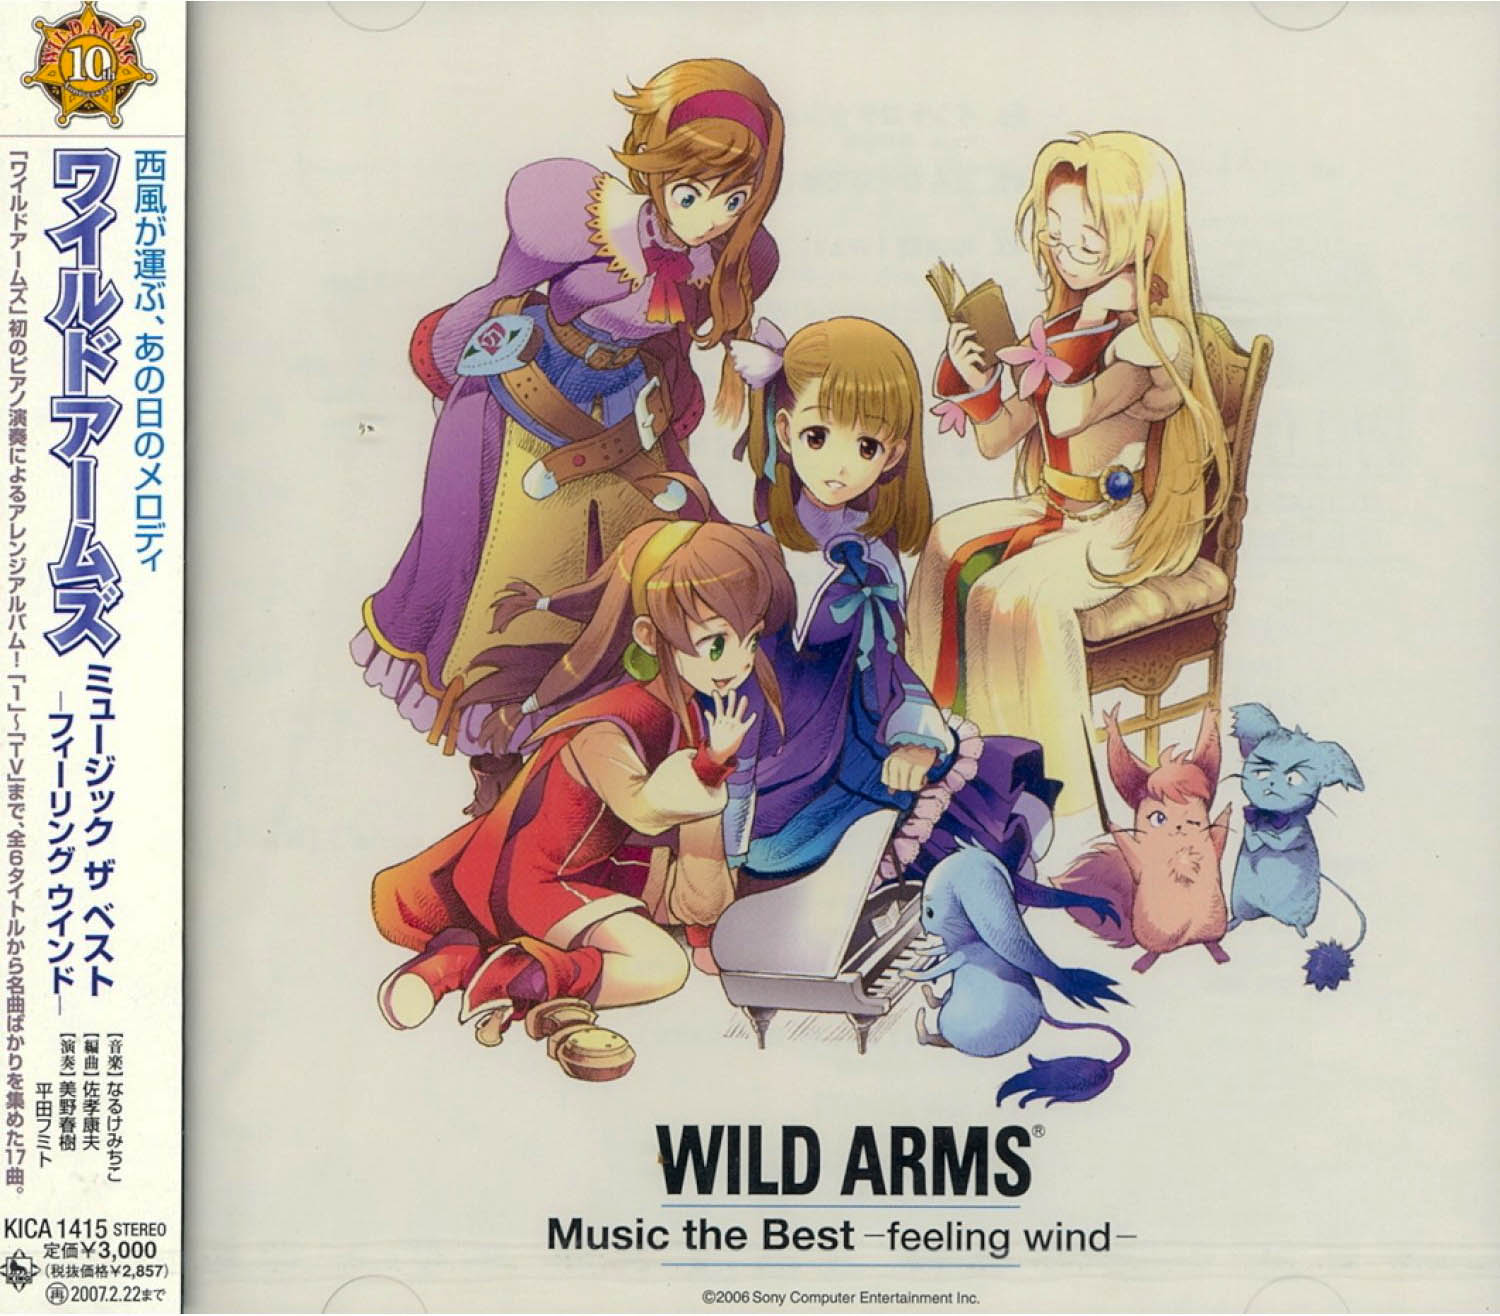 WILD ARMS Music the Best -feeling wind-